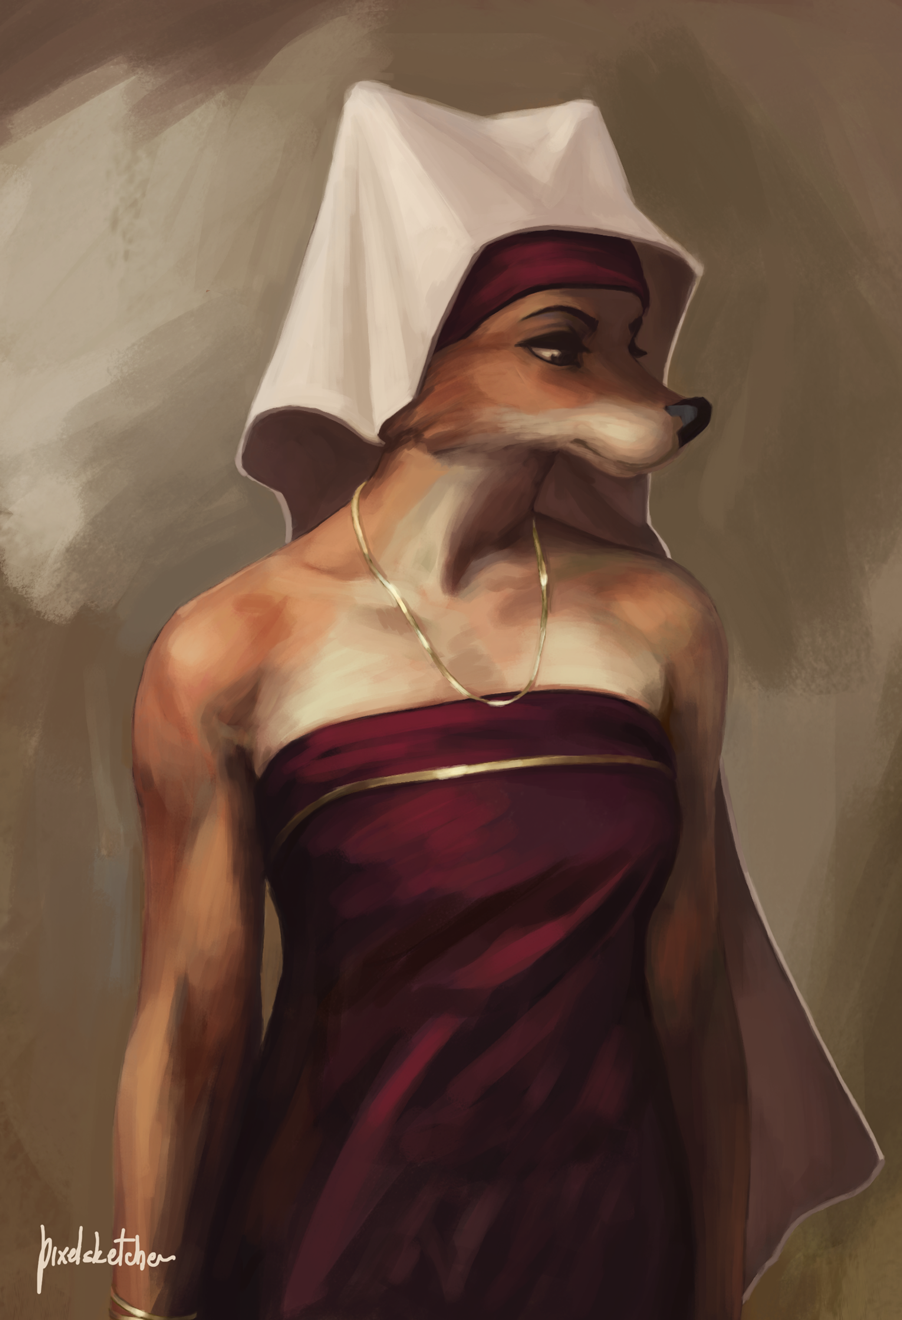 Most recent image: Maid Marian